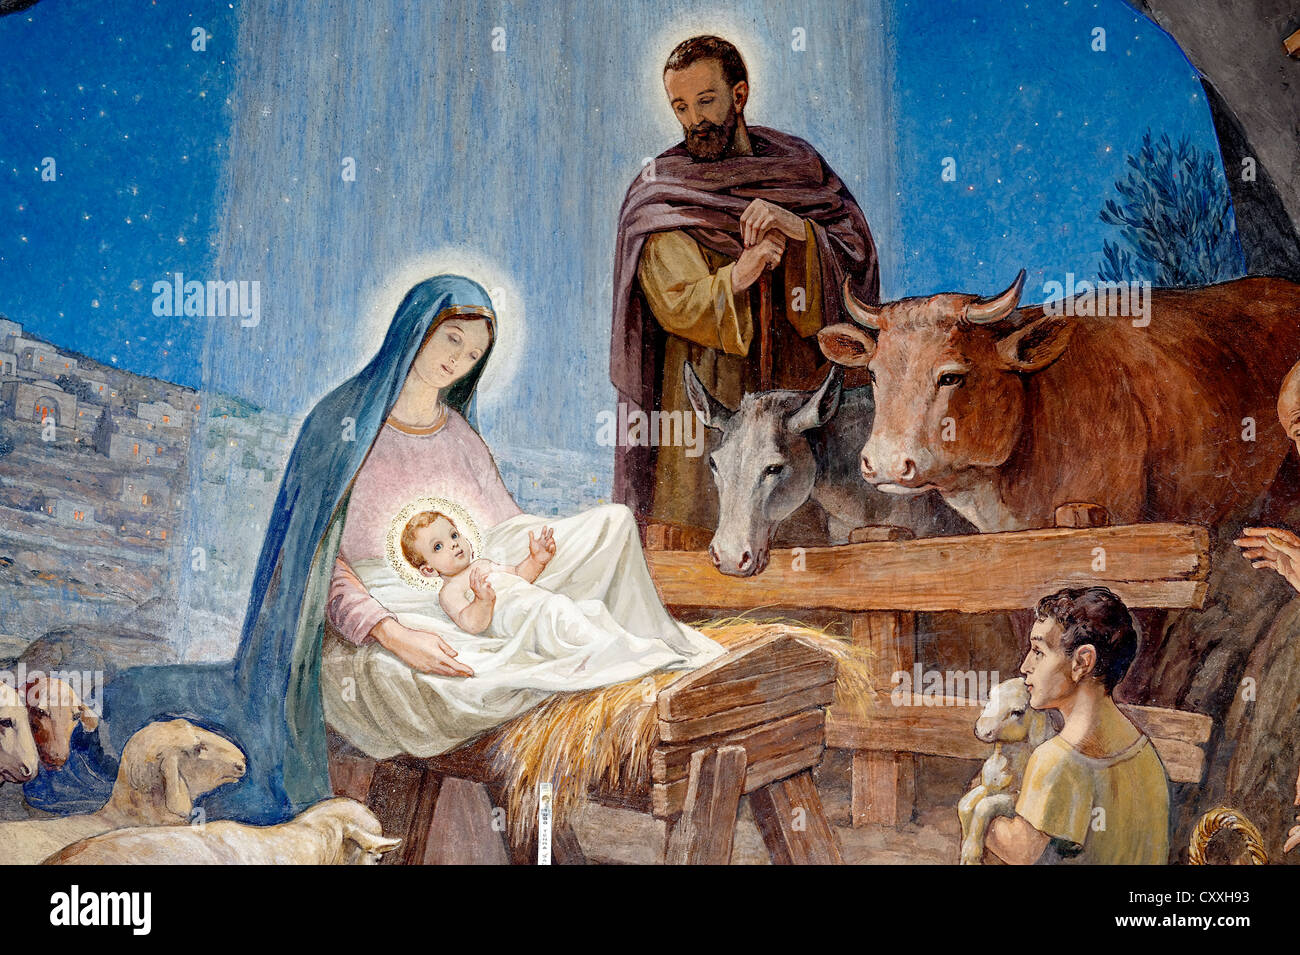 Birth of Jesus, fresco, Der es-Siar Chapel, Shepherds' Fields, religious place of the Night Watch, Beit Sahour - Stock Image